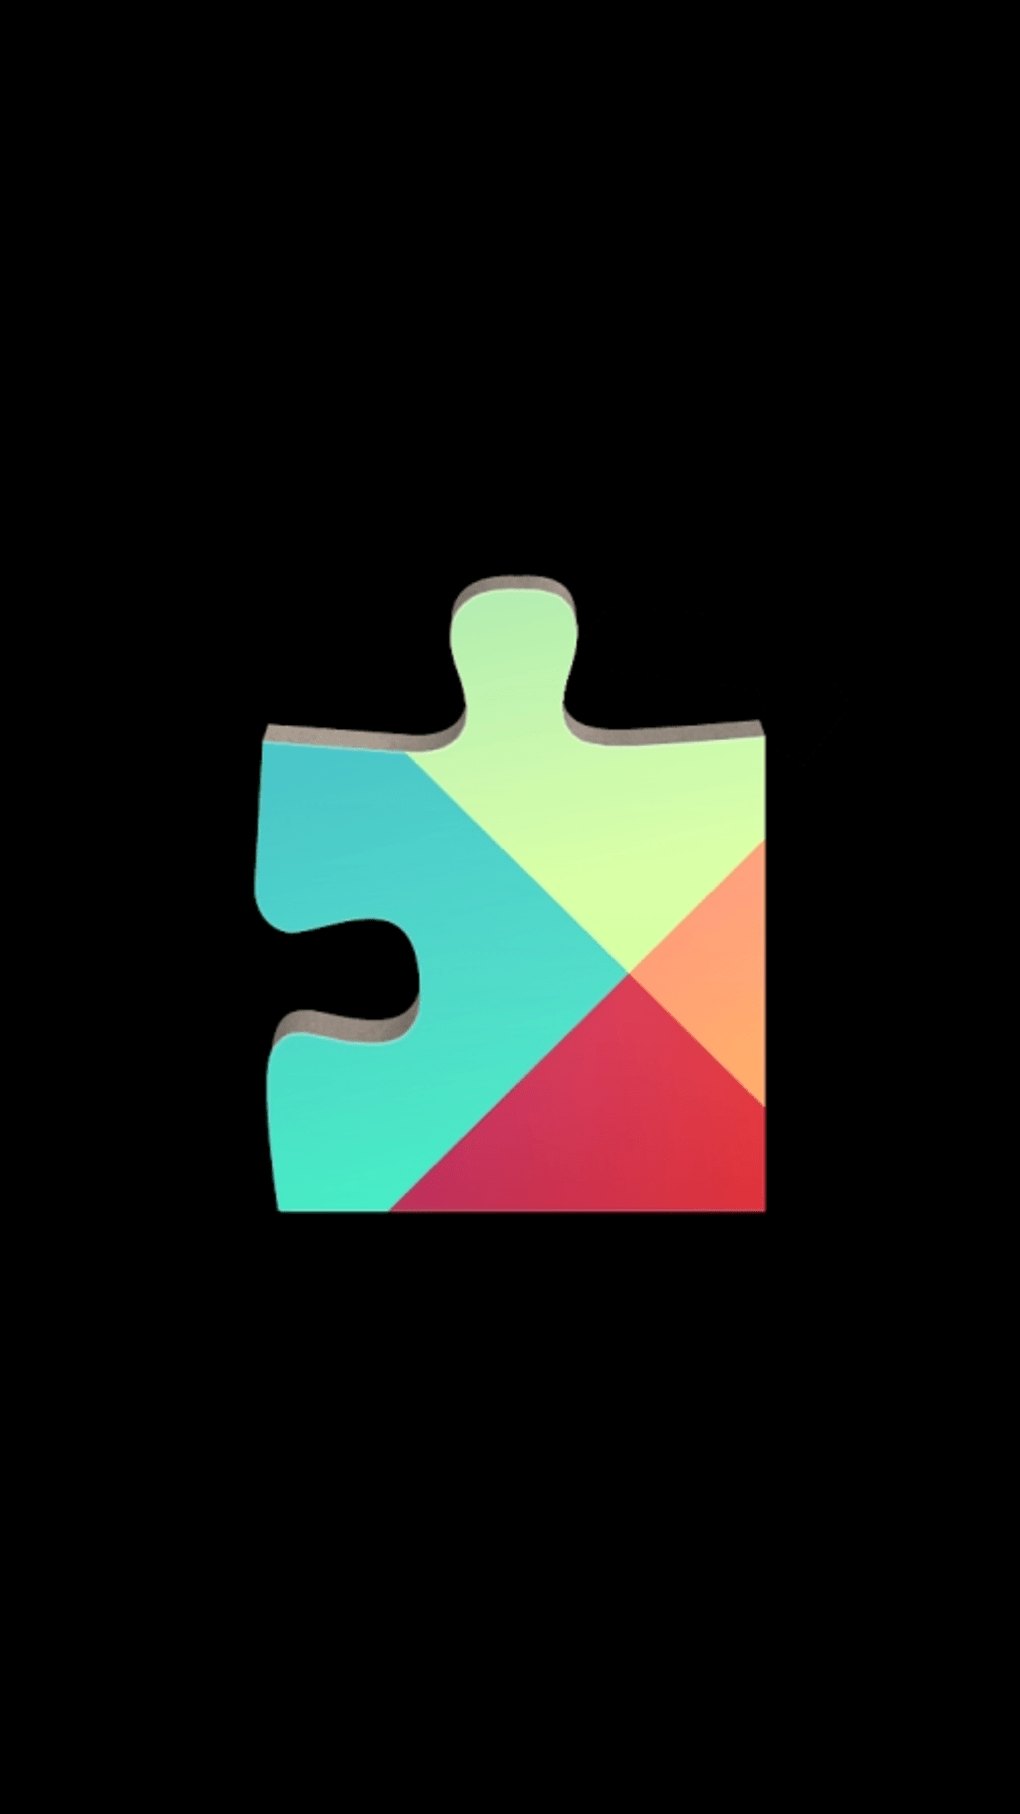 Google Play Services for Android - Download